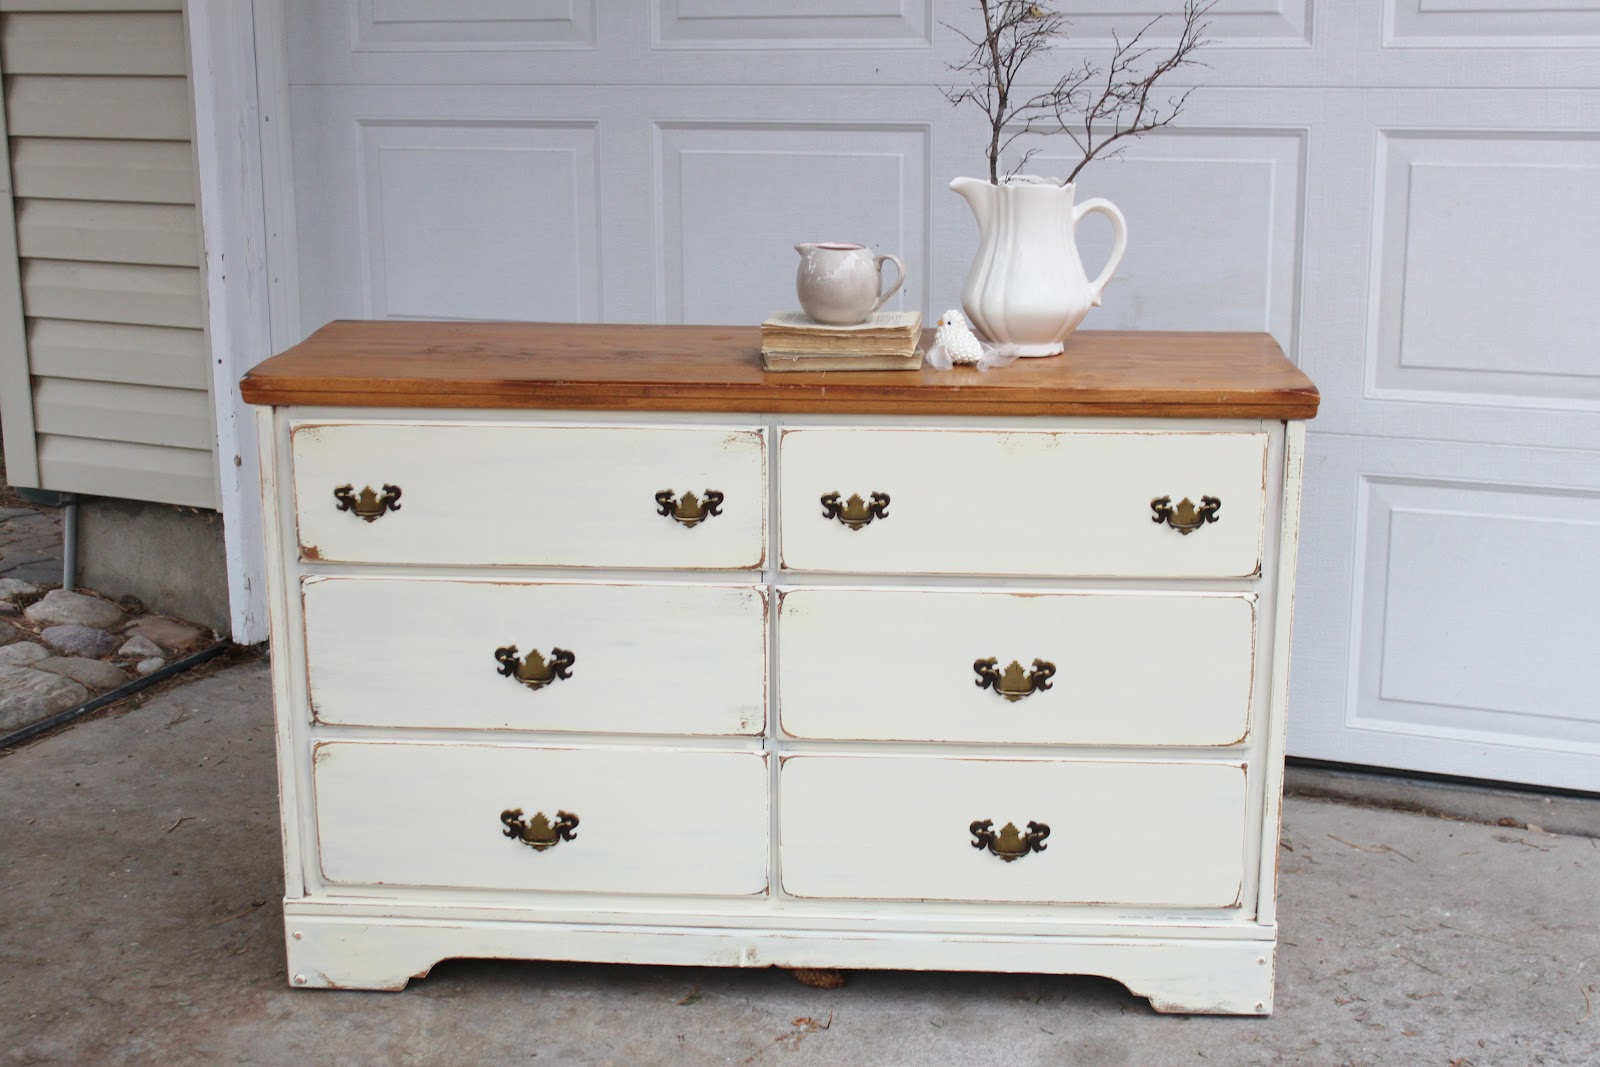 Impressive decorate your house with elegant furniture: go for shabby chic furniture eunovdx